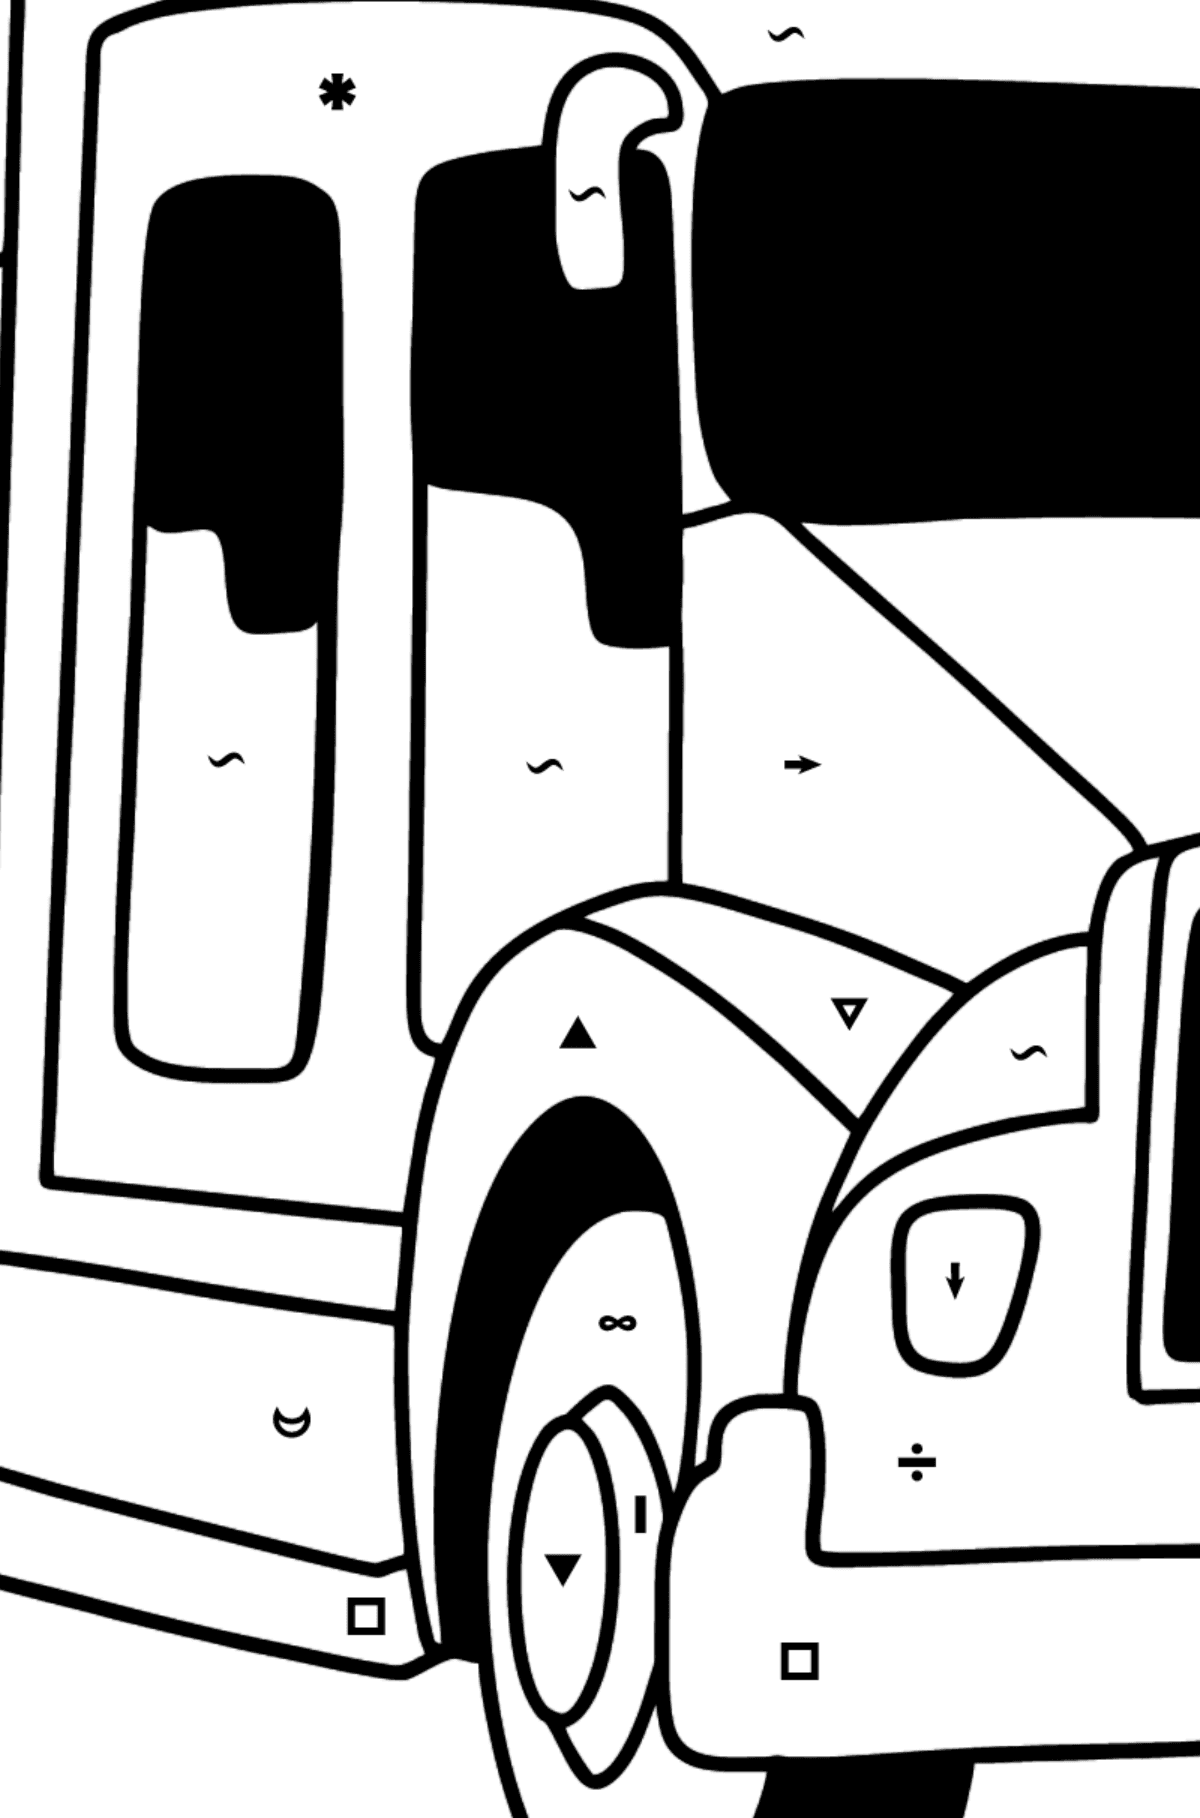 USA Fire Truck coloring page - Coloring by Symbols for Kids